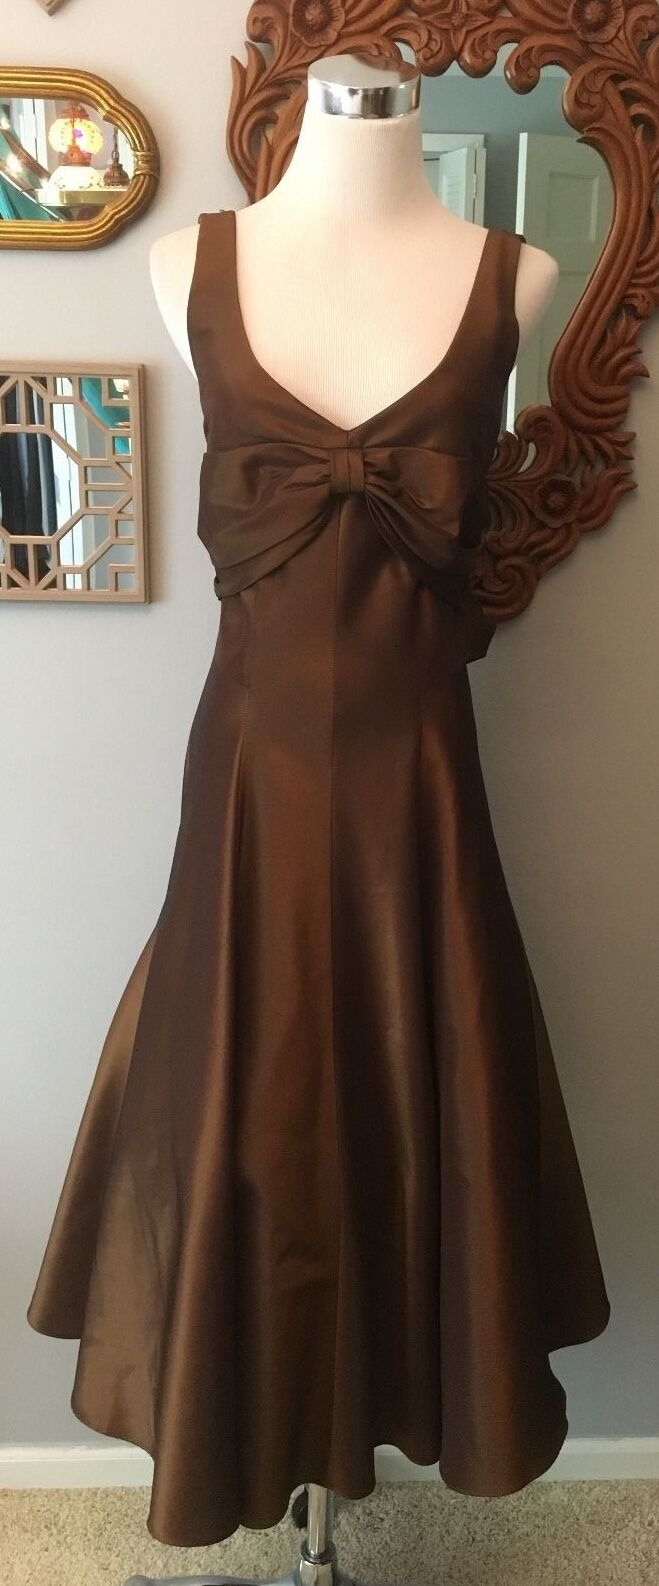 NICOLE MILLER BROWN KNEE LENGTH GOWN SIZE 4 PERFECT CONDITION